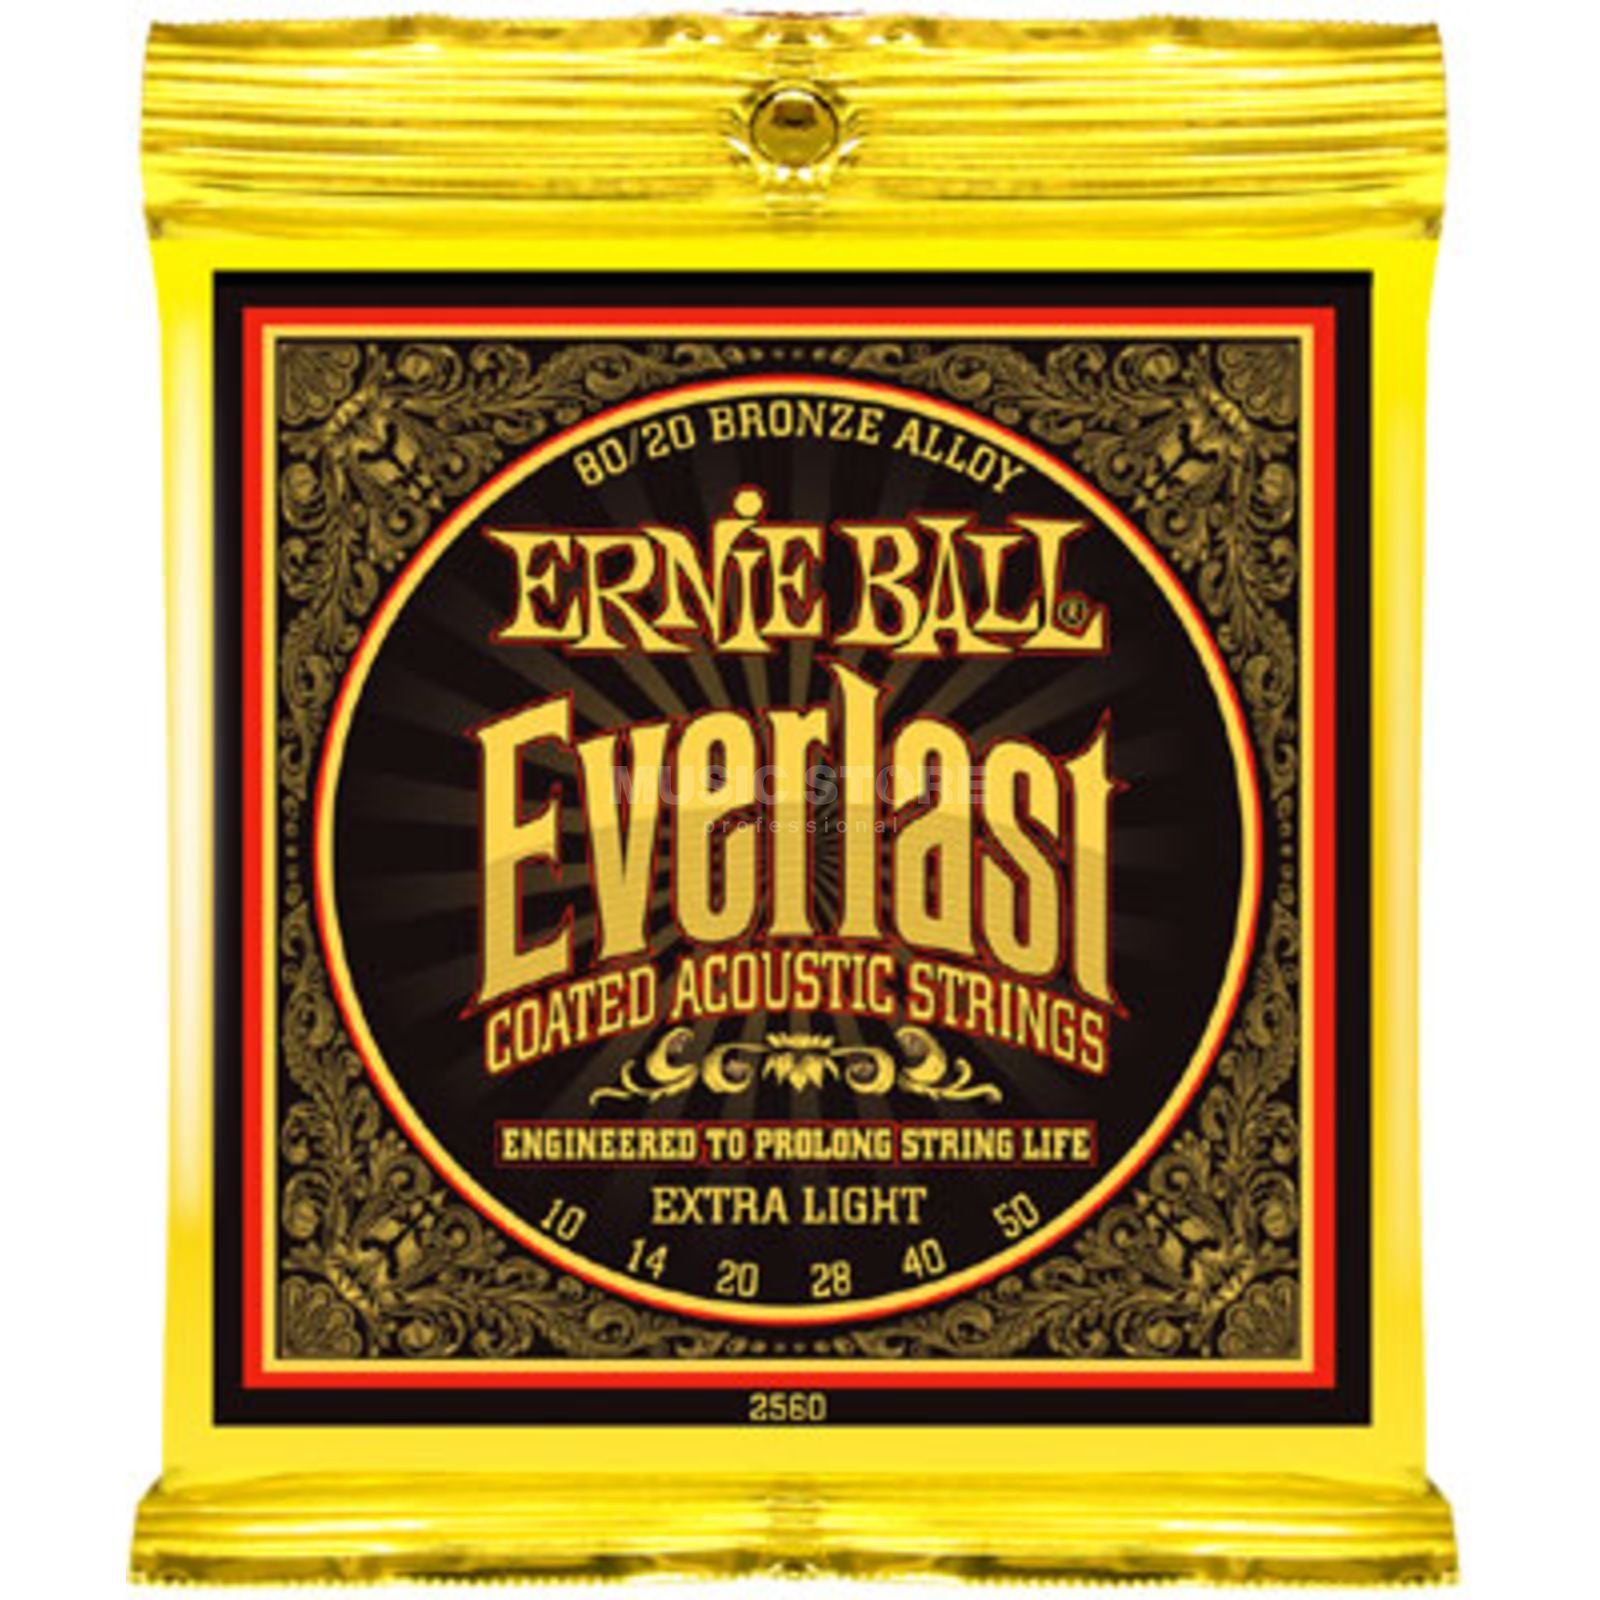 Ernie Ball A-Guit. Strings 10-50 Everlast Bronze, EB2560 Produktbillede